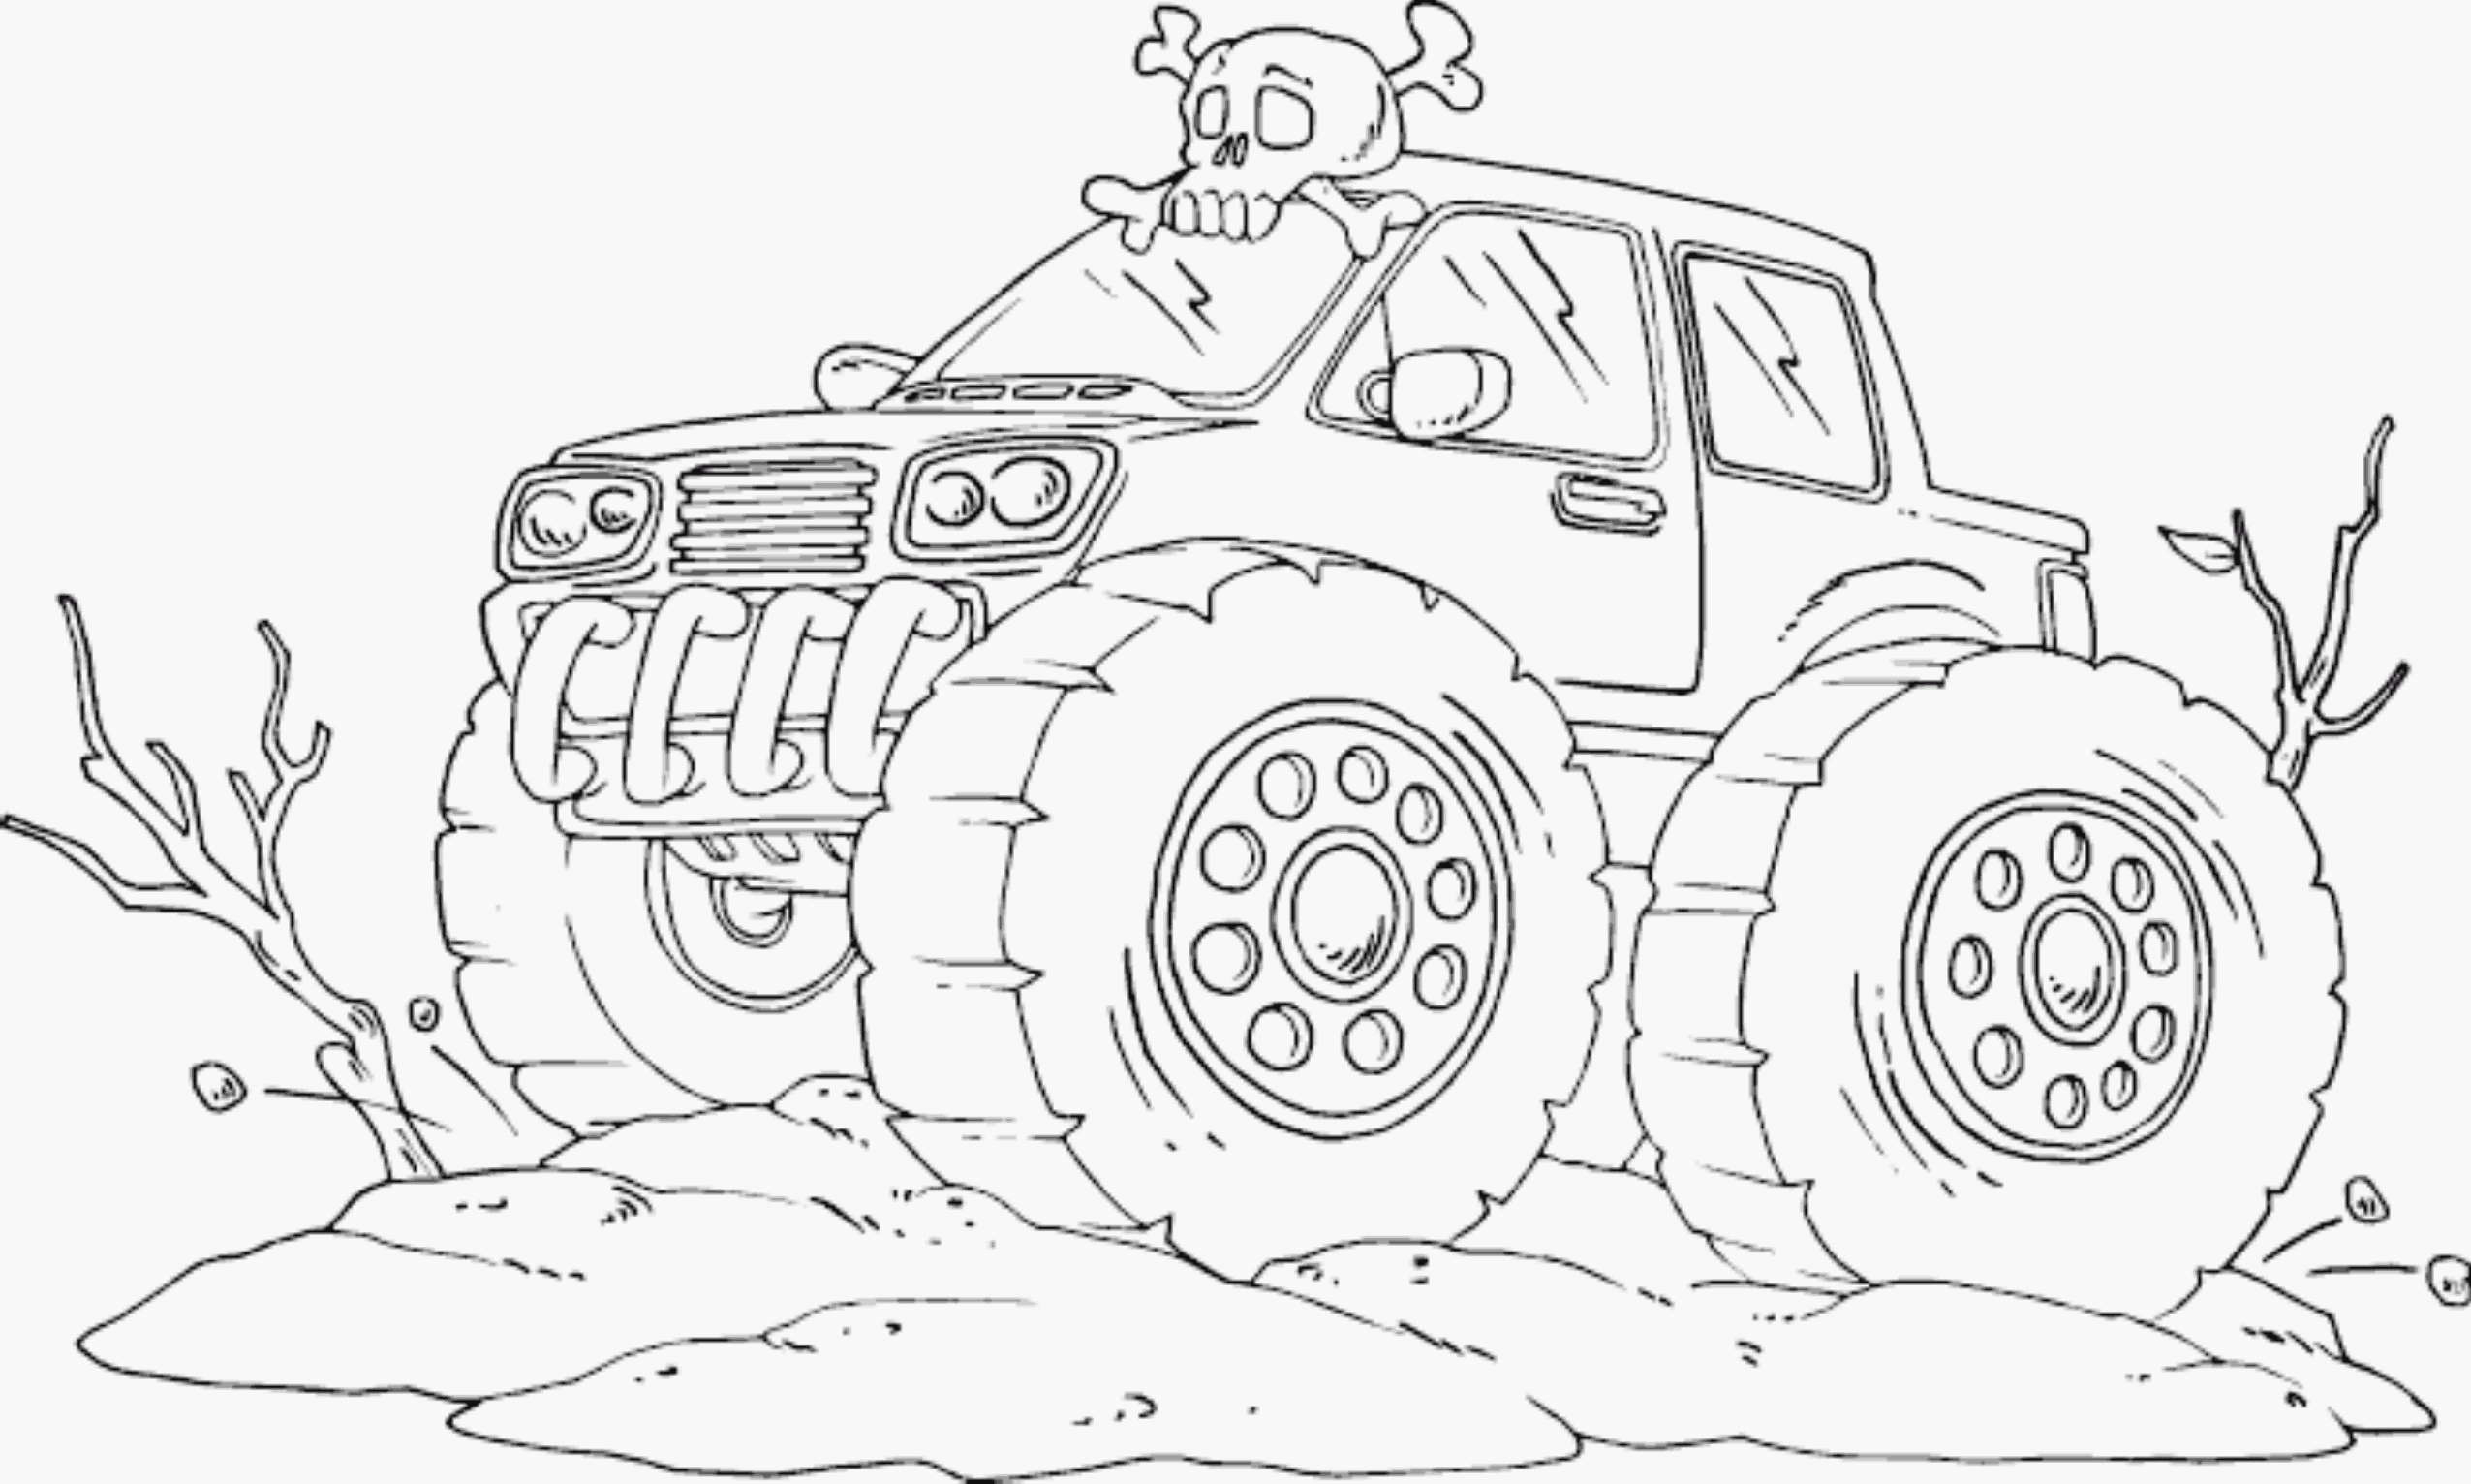 Serious Monster Truck Coloring Page For Kids Pages Printable General Gallery Of Grave Digger